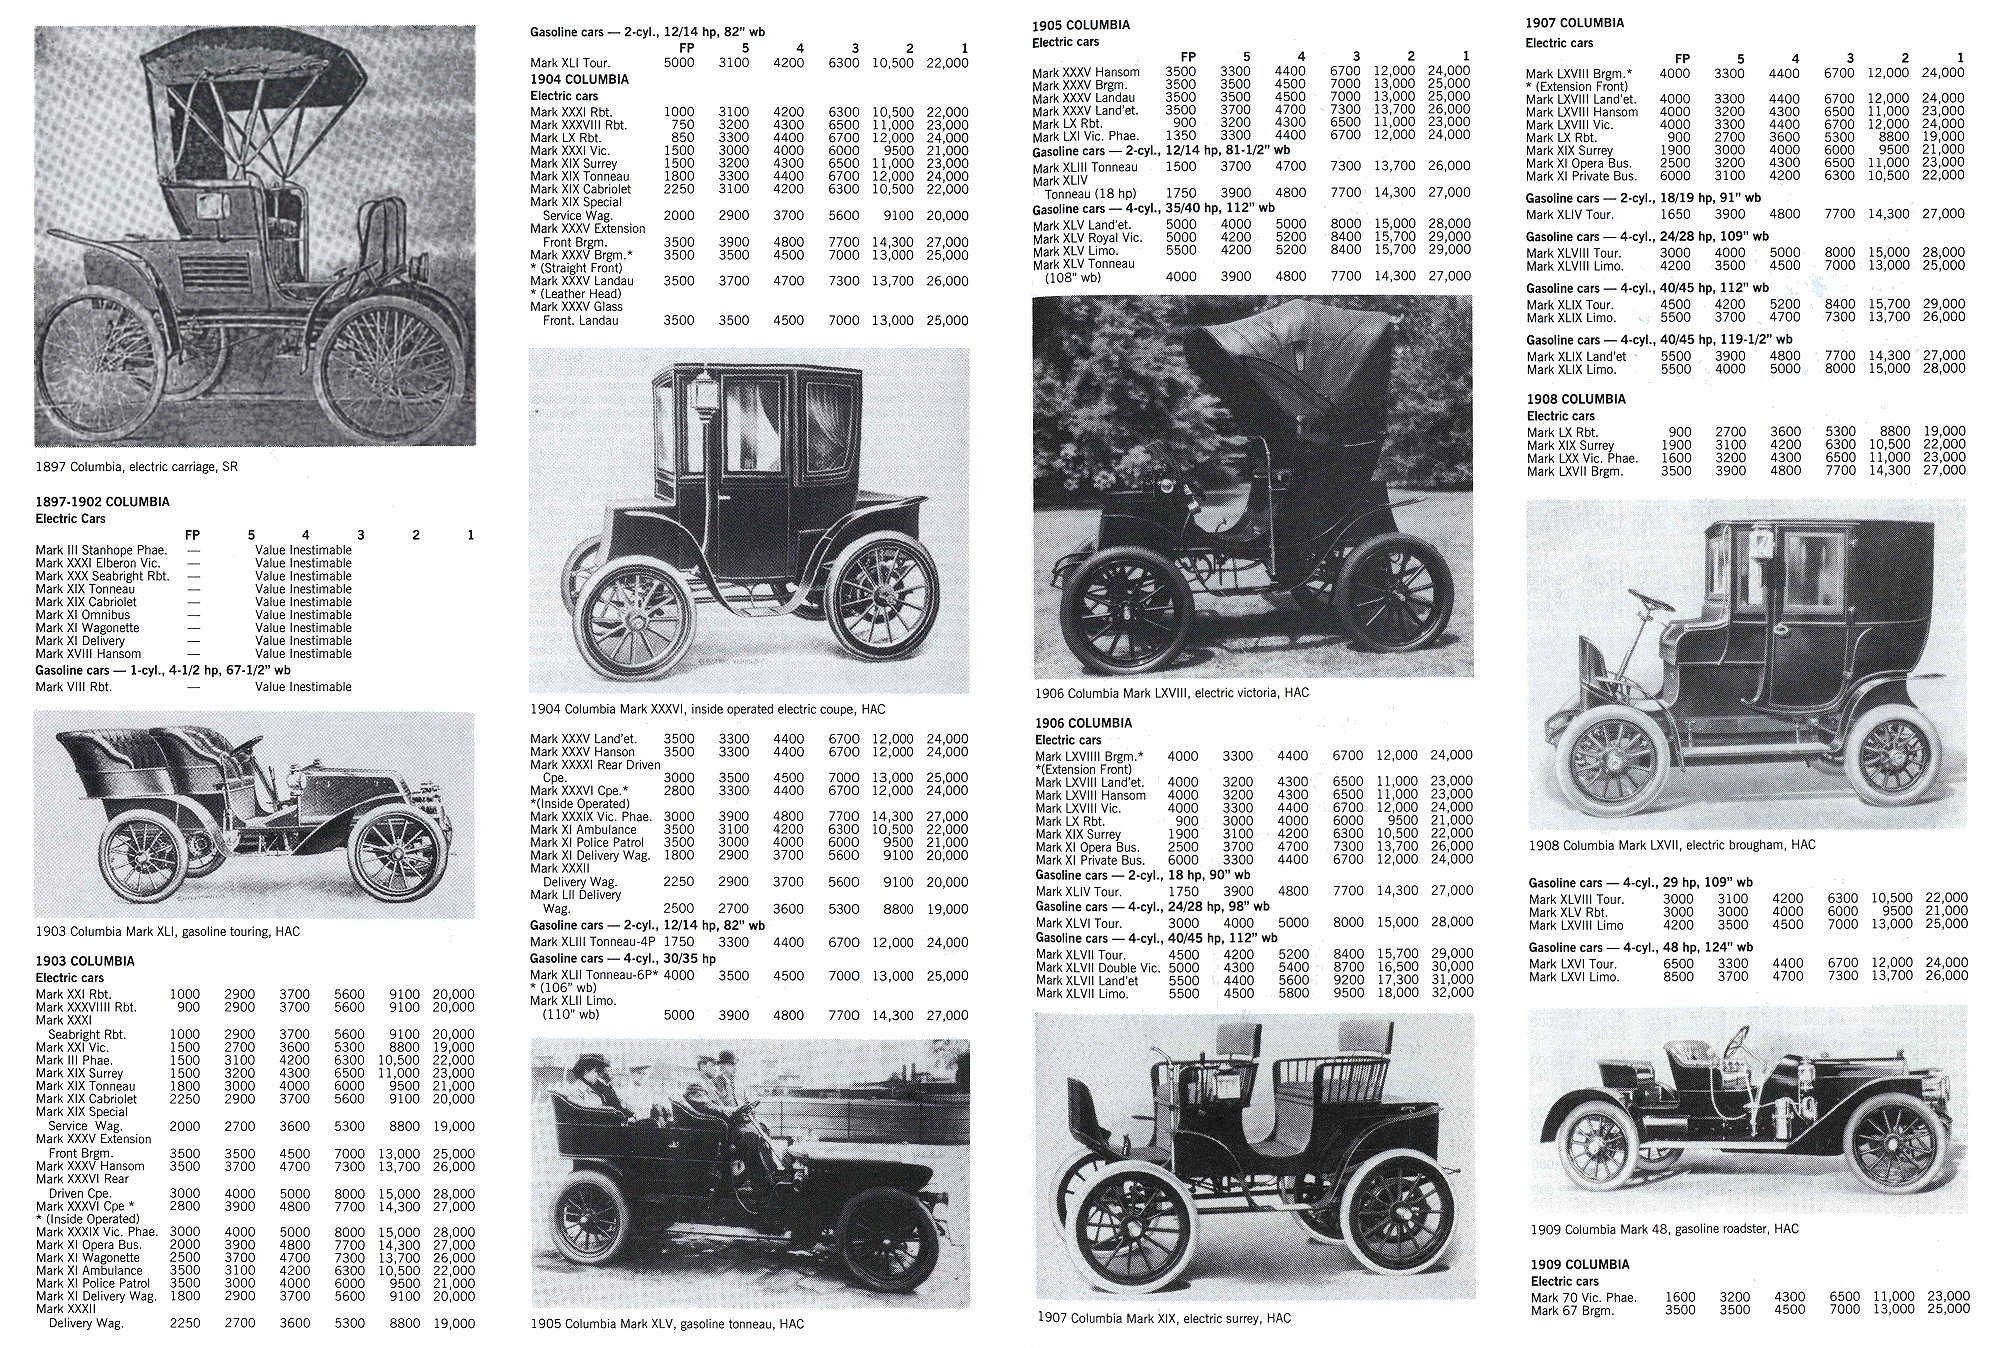 COLUMBIA Hartford, Connecticut 1897-1913 Standard Catalog of AMERICAN CARS 1805-1942 By Beverly Rae Kimes & Henry Austin Clark, Jr. Krause Publications ISBN: 0-87341-428-4 Pages 358 & 359 8.5″x11″